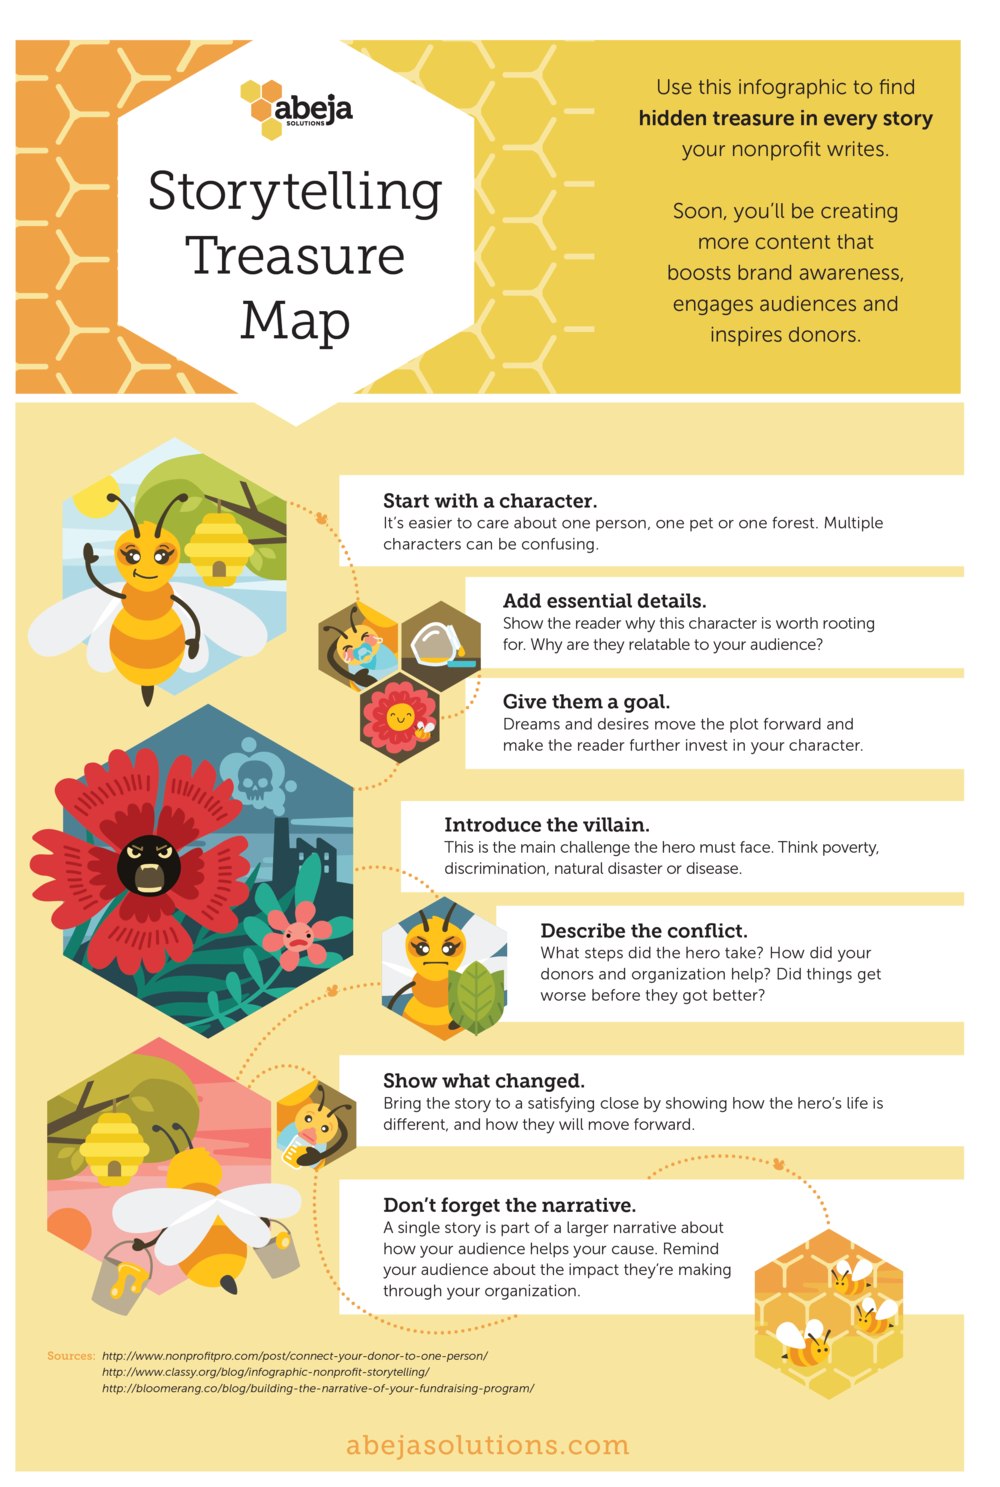 Abeja_Solutions_Storytelling_Treasure_Map.png